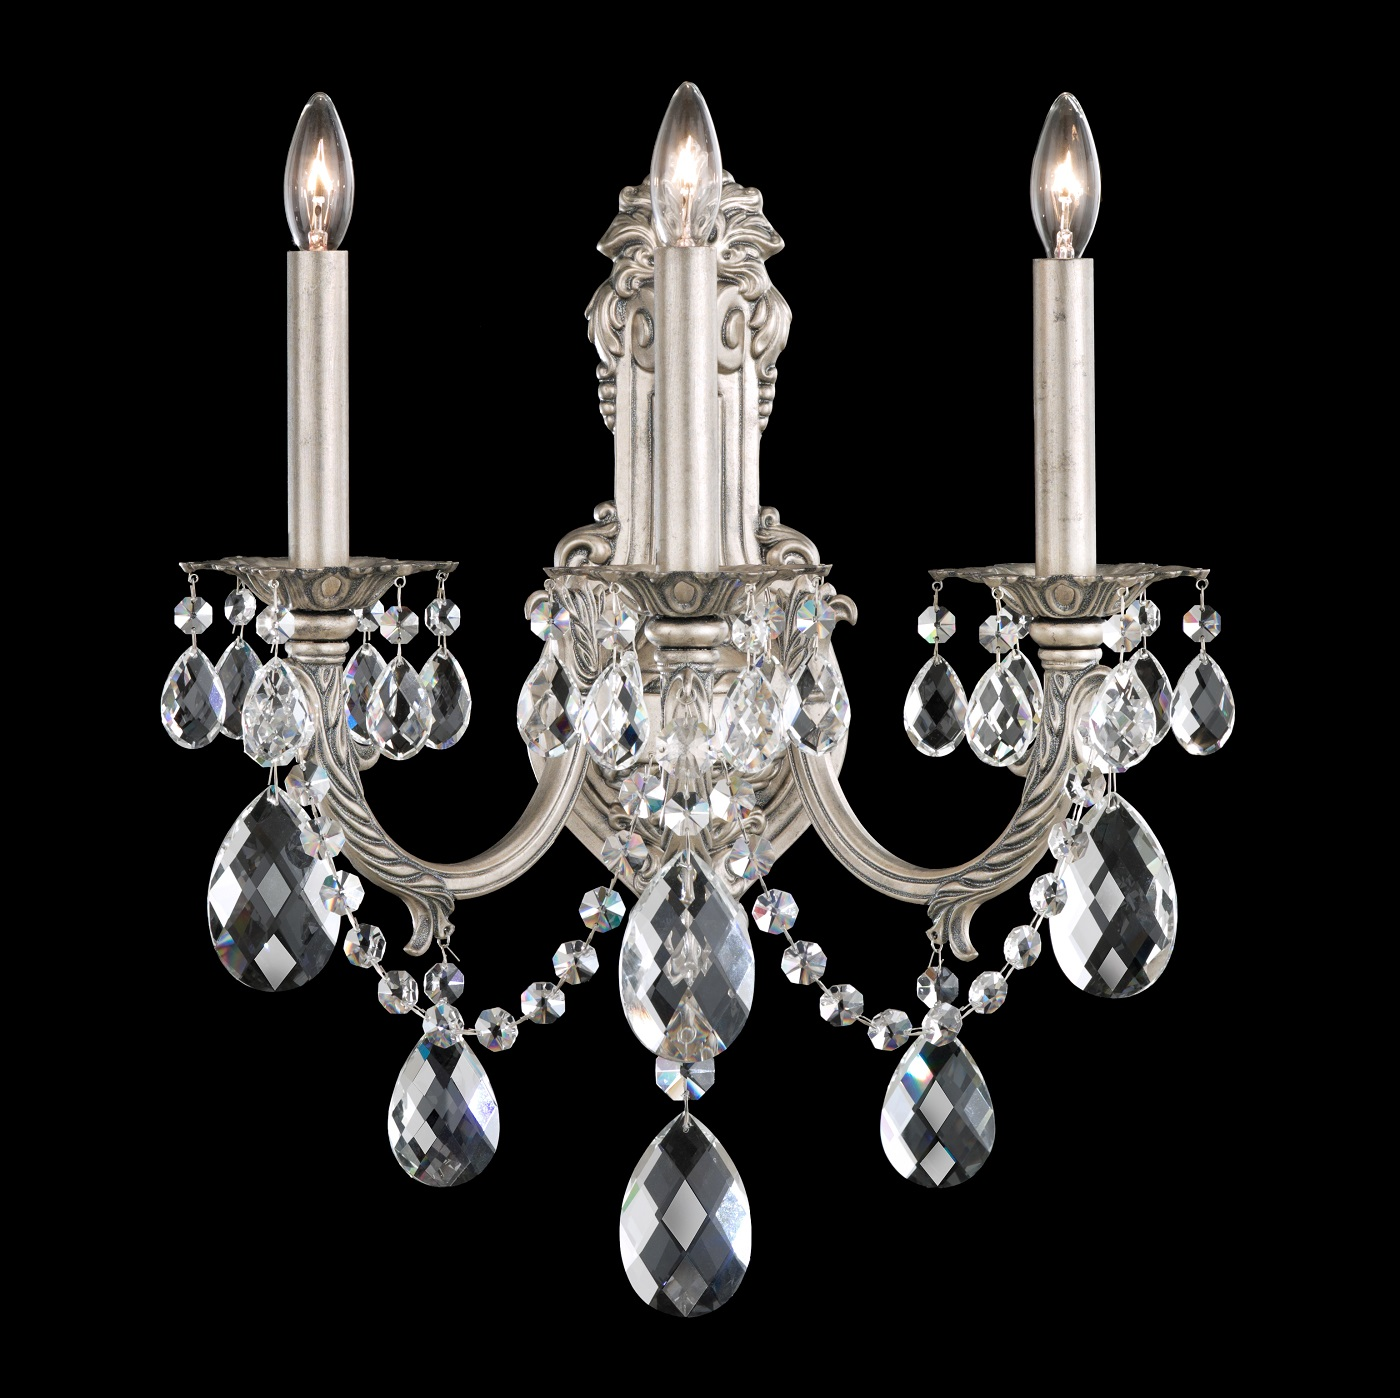 Schonbek Alea AL6503 Wall Sconces for Sale Brooklyn, New York - Accentuations Brand